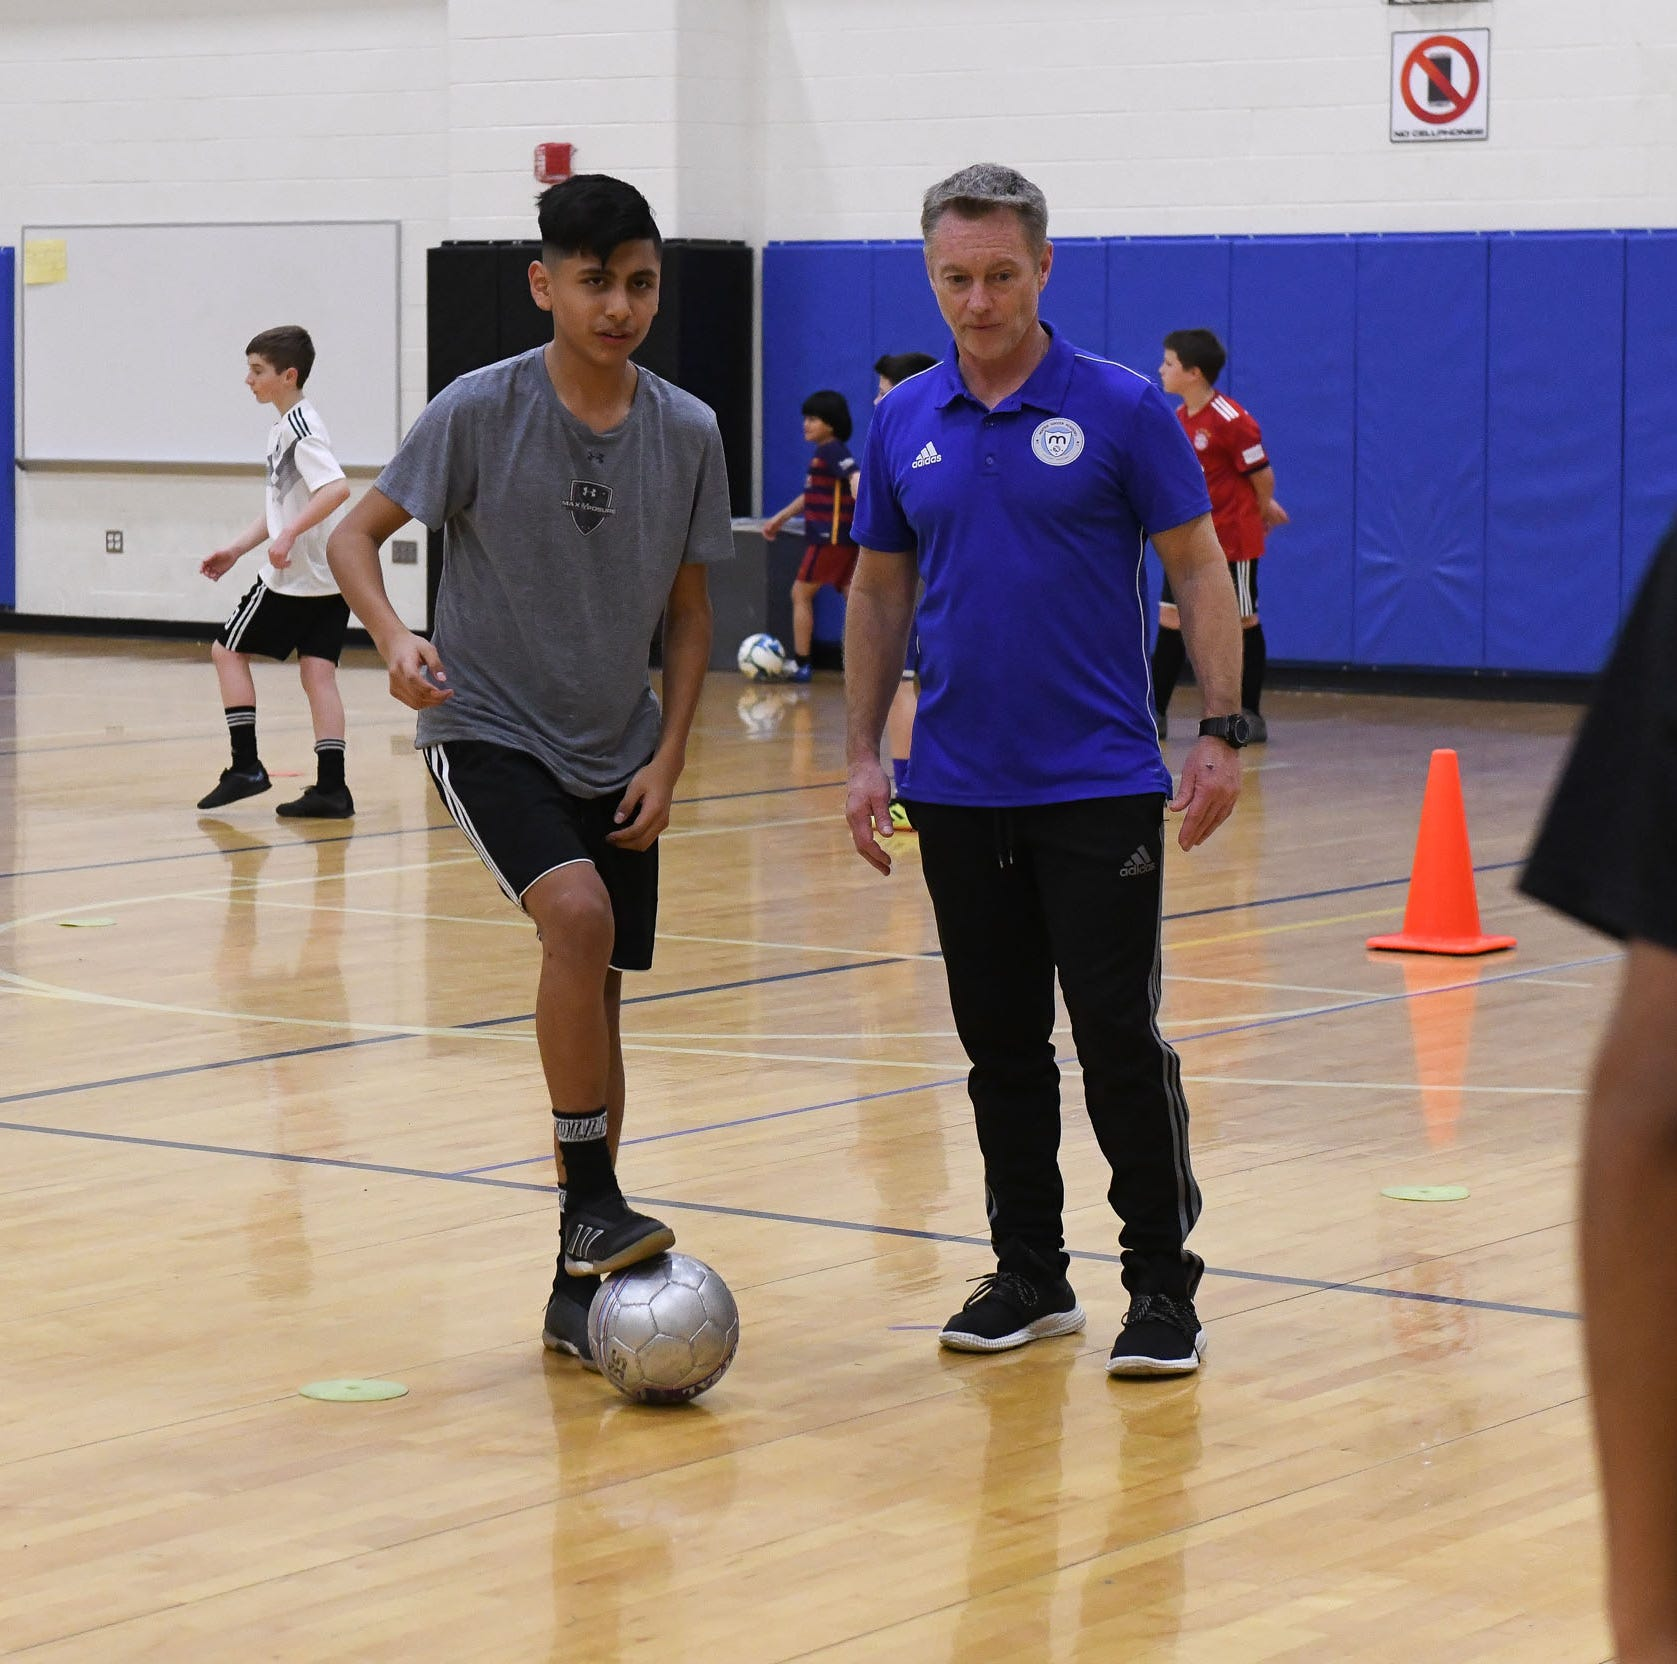 Matrix Soccer Academy preps young athletes for big stage